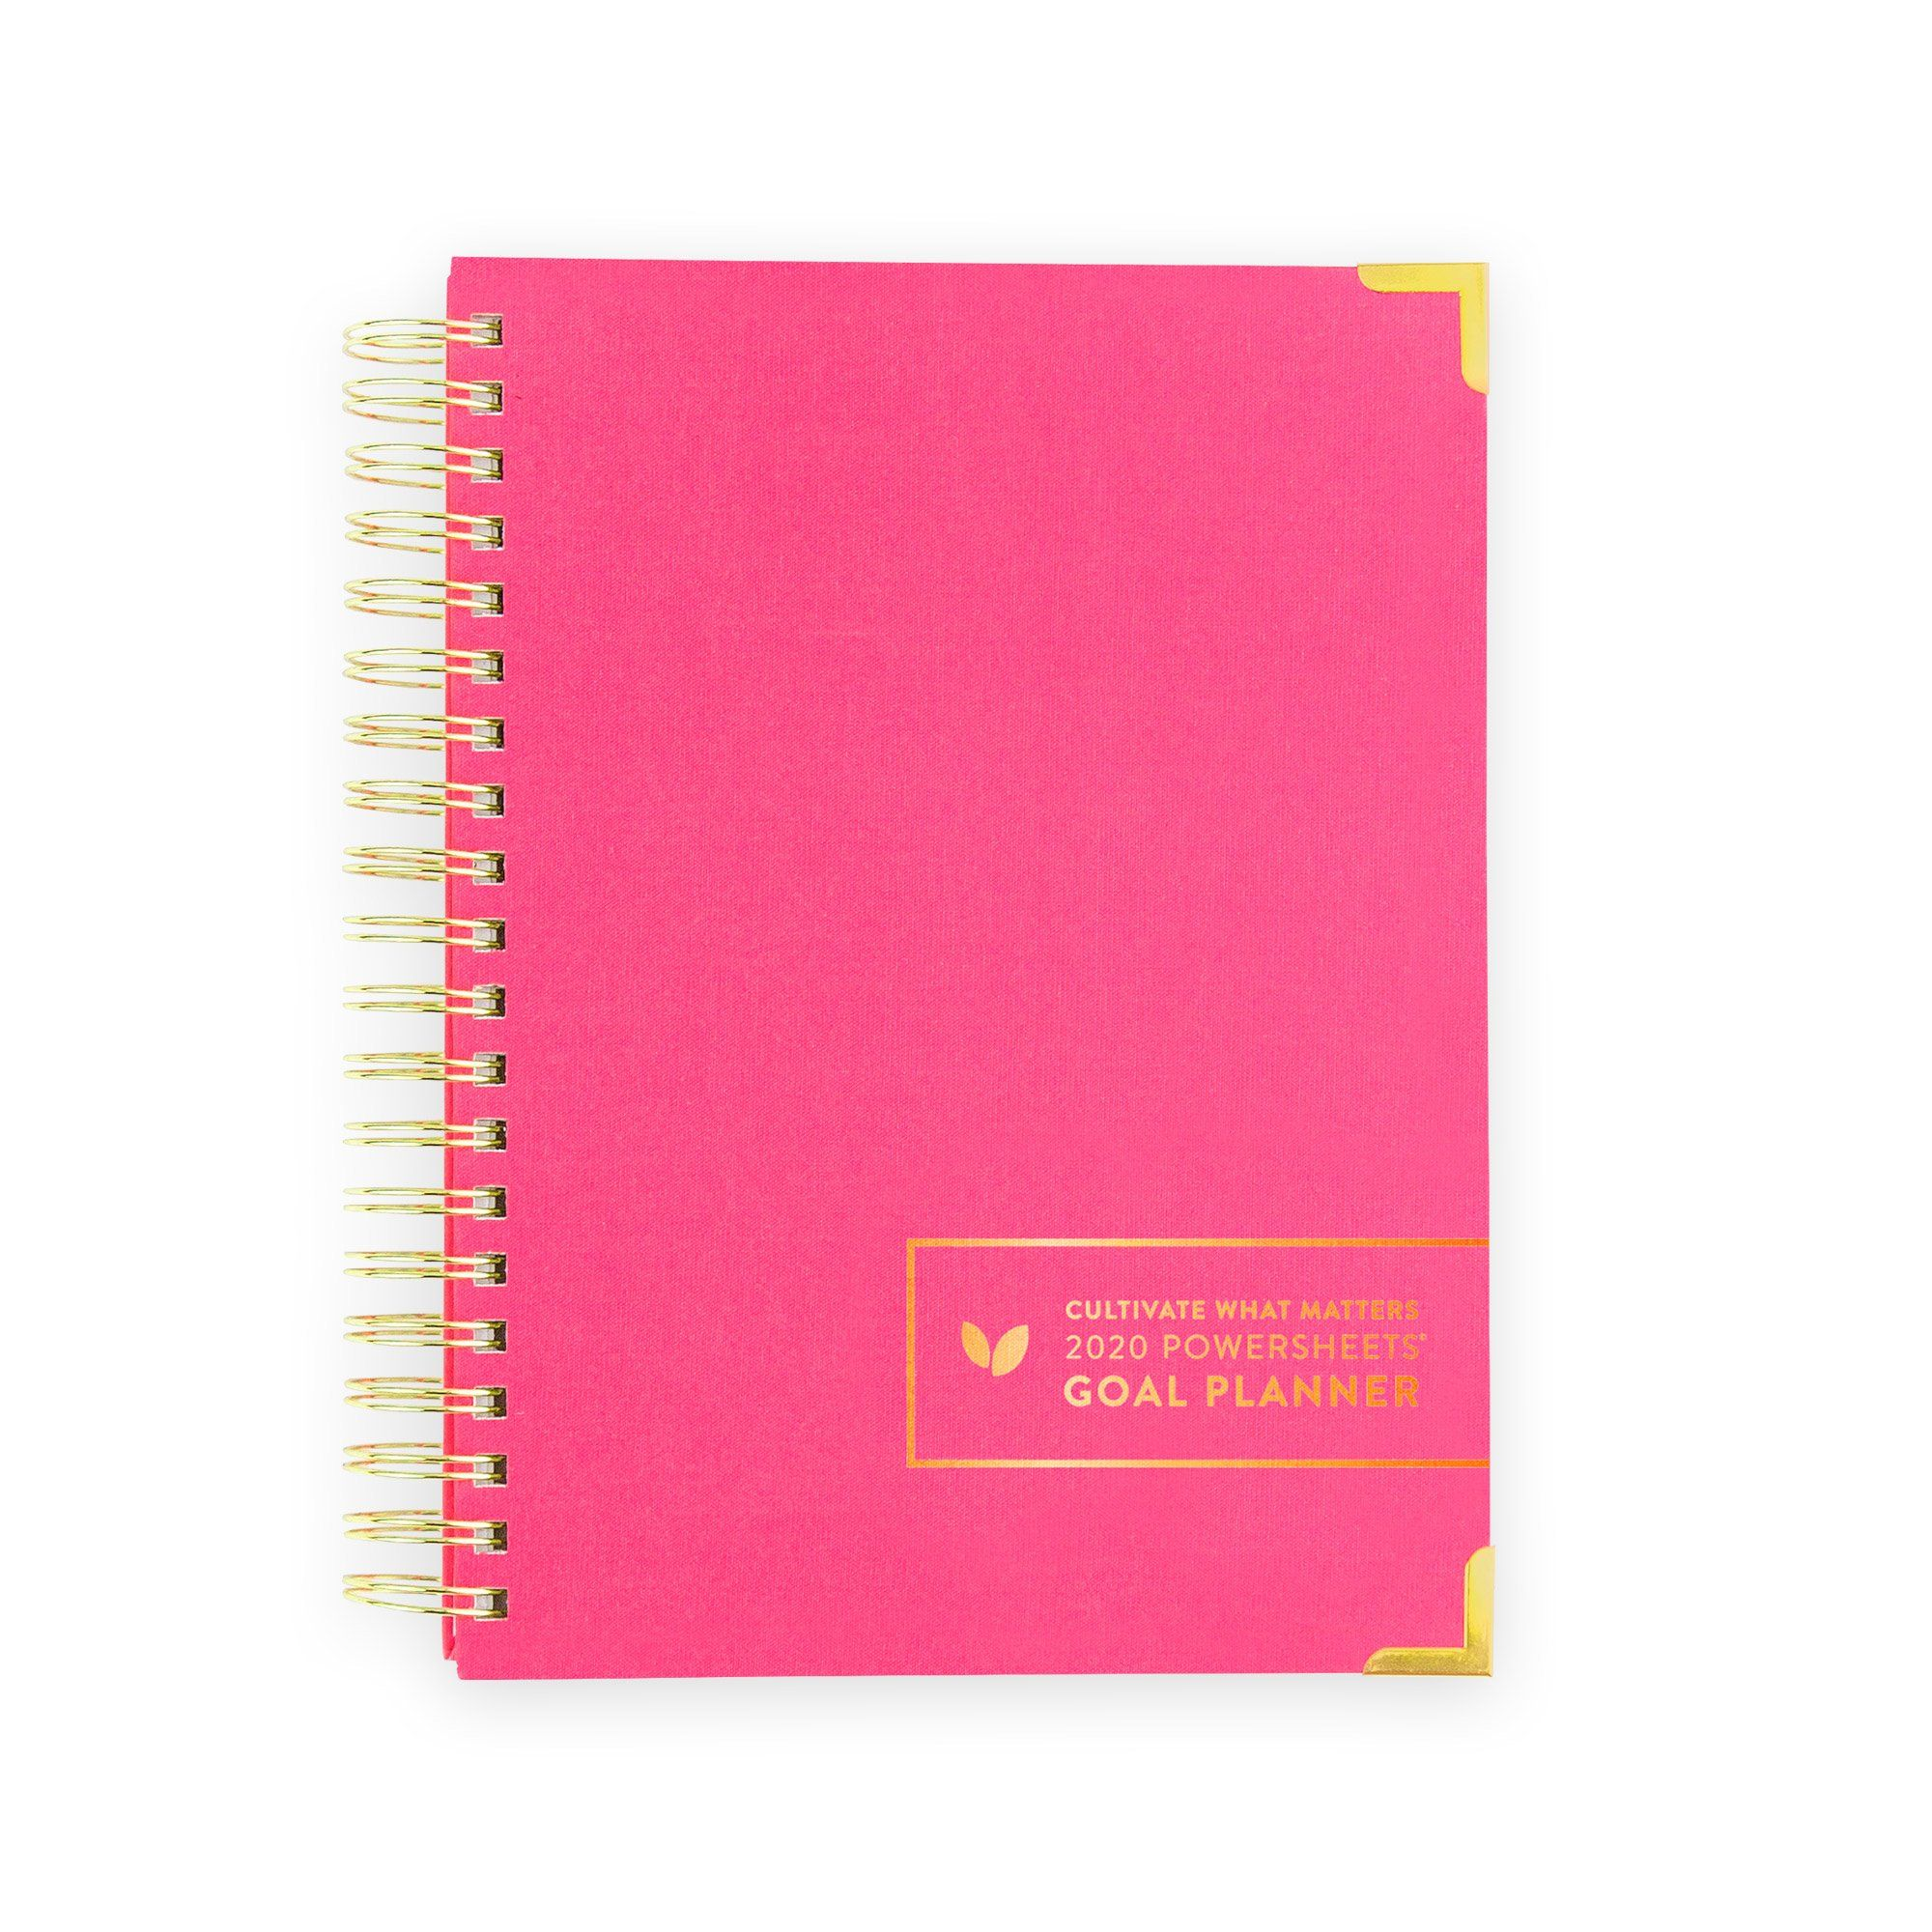 Introducing The Powersheets Intentional Goal Planners